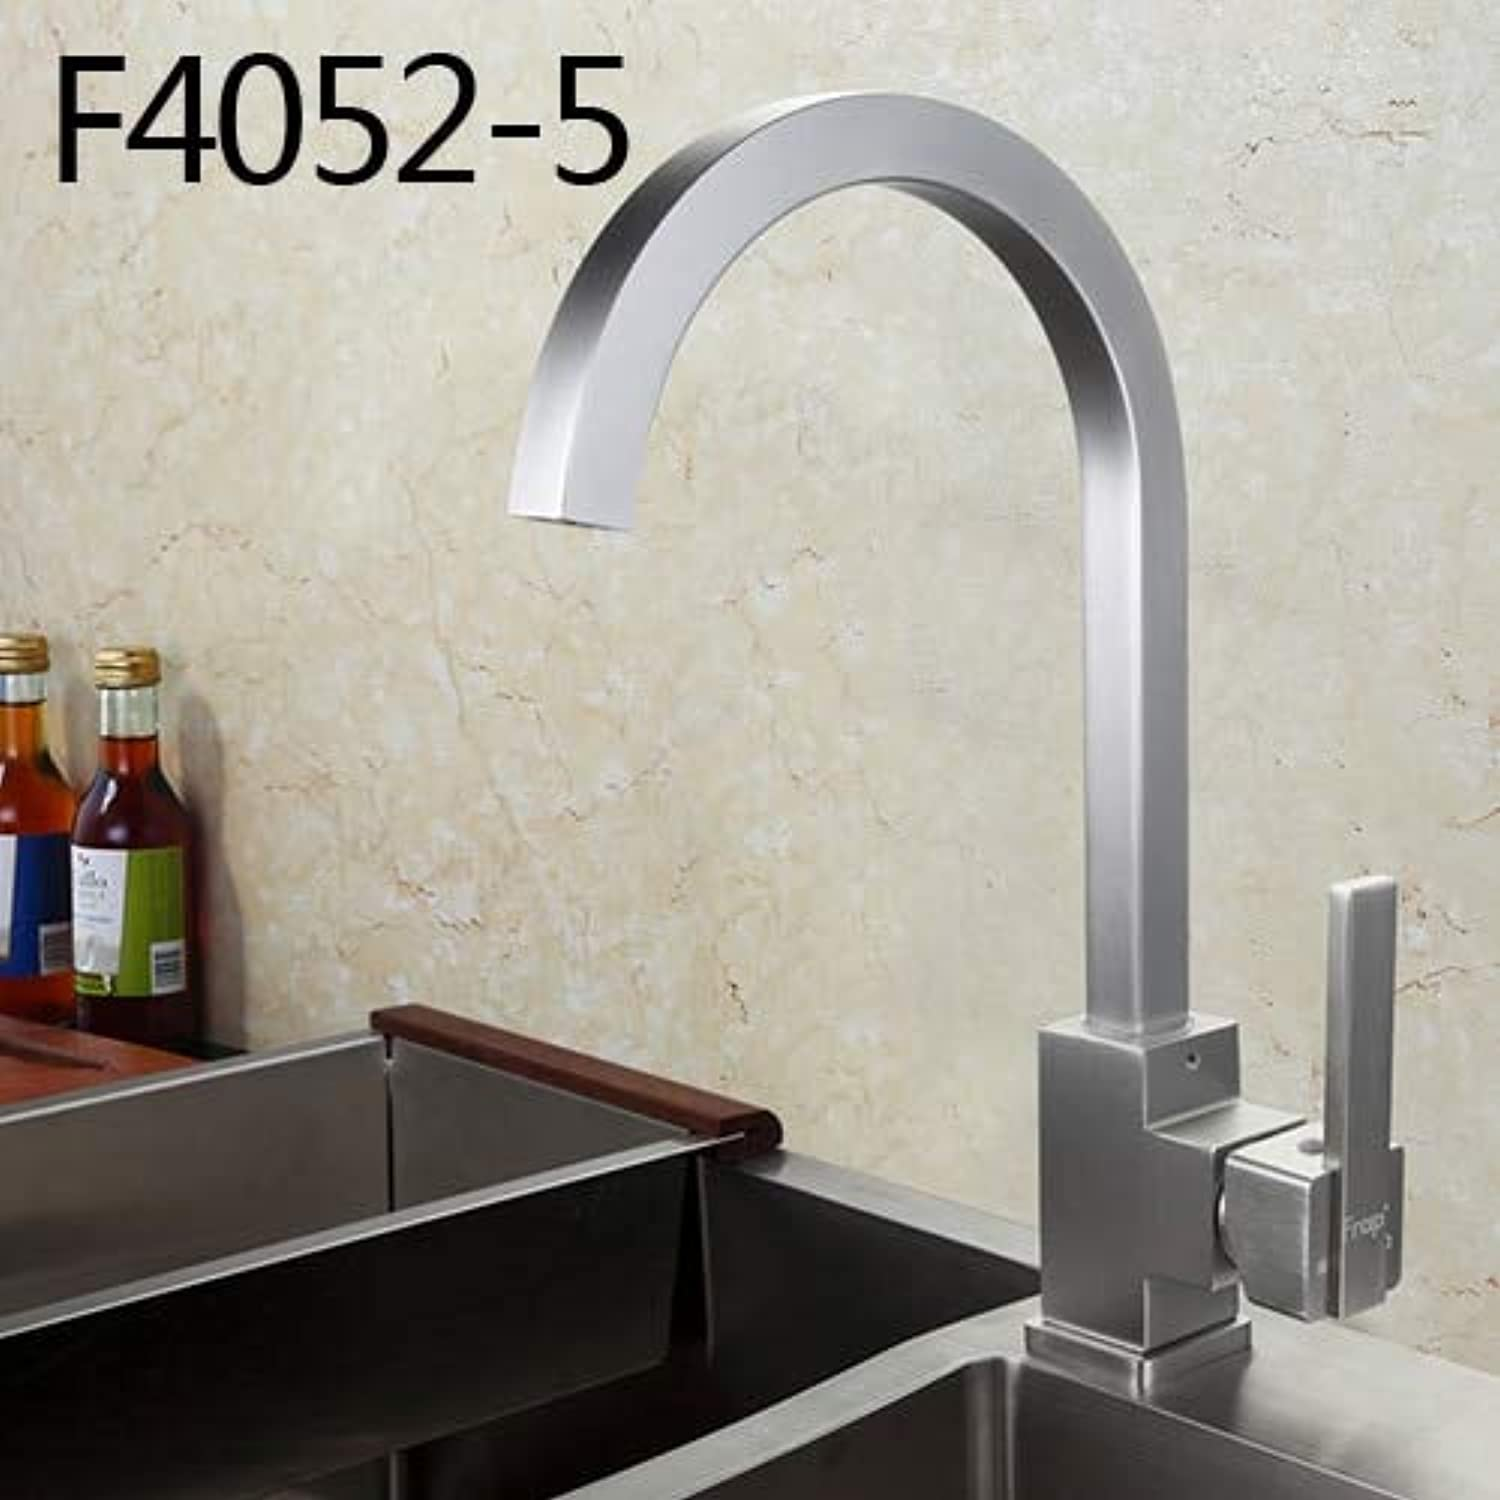 U-Enjoy Chandelier and Cold Hot Water Kitchen Top Quality Sink Classic Faucet Space Aluminum Swivel Brass Water Brushed Tap Mixer 360 Degree redation Free Shipping [F4052 5 Aluminum]